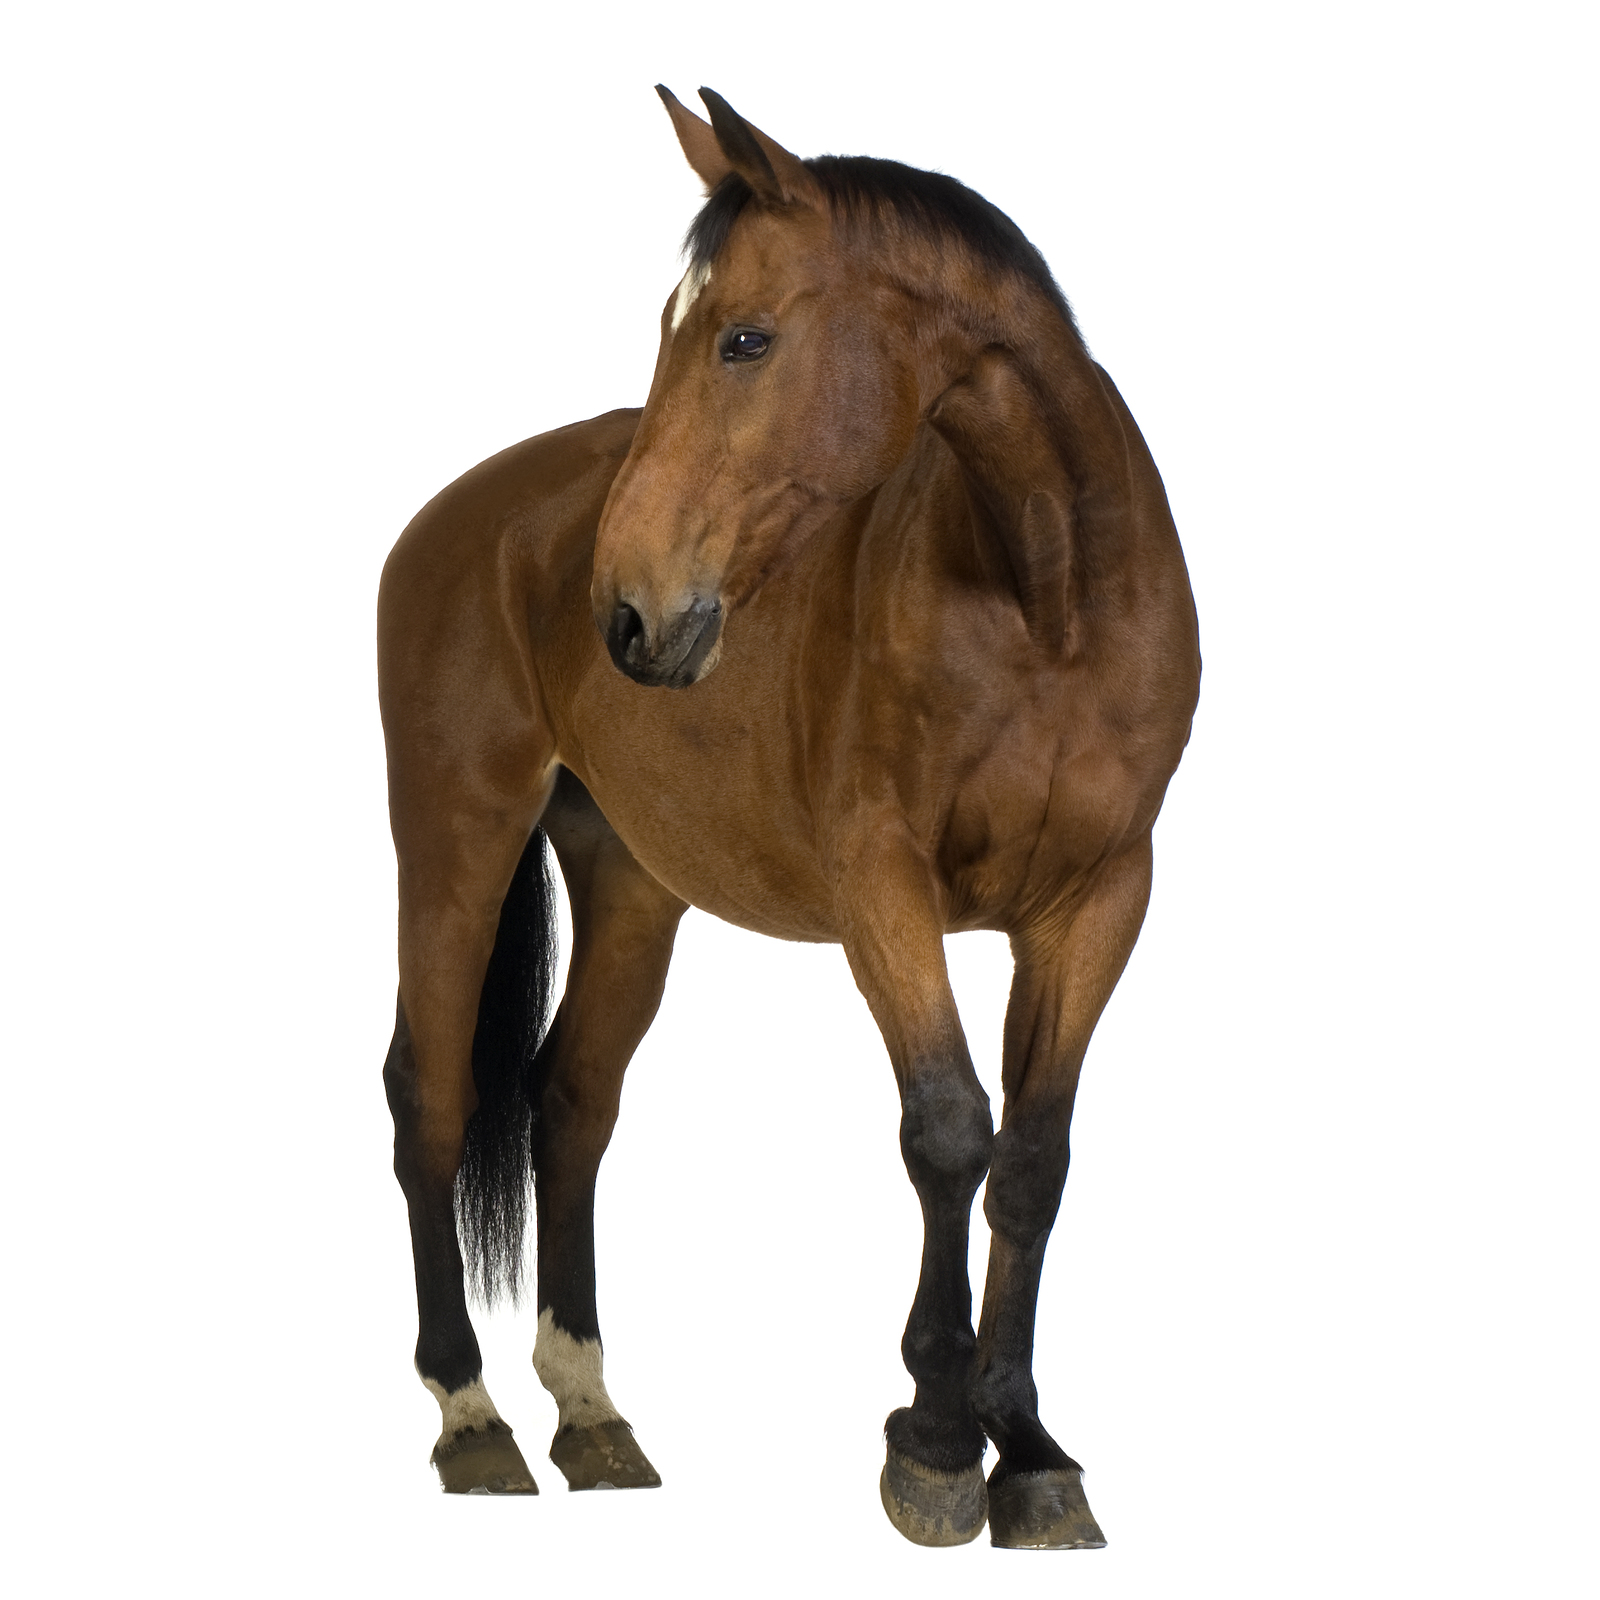 Brown horse with black mane and tail standing on its fours.